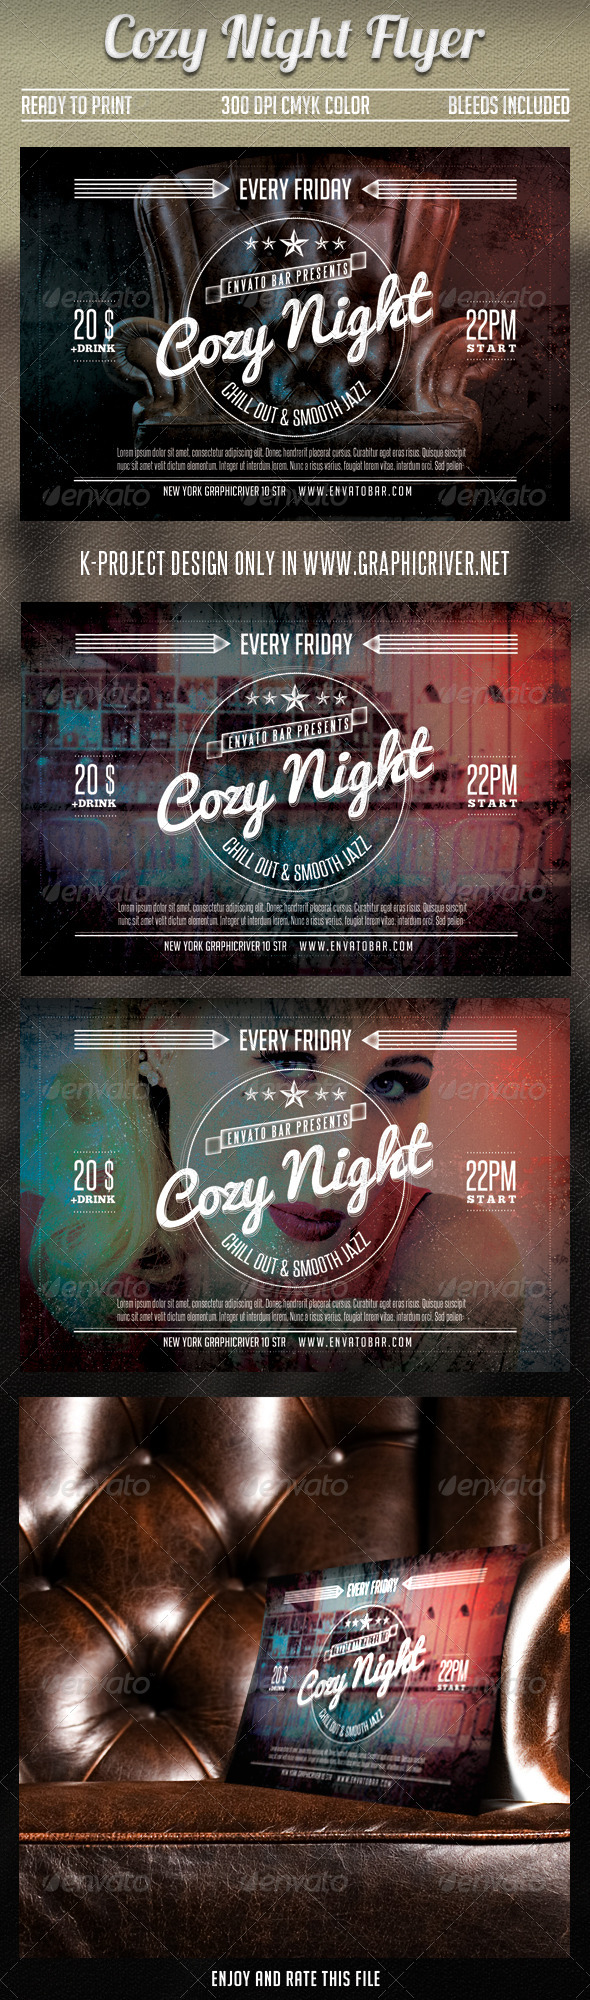 Cozy Night Flyer - Clubs & Parties Events